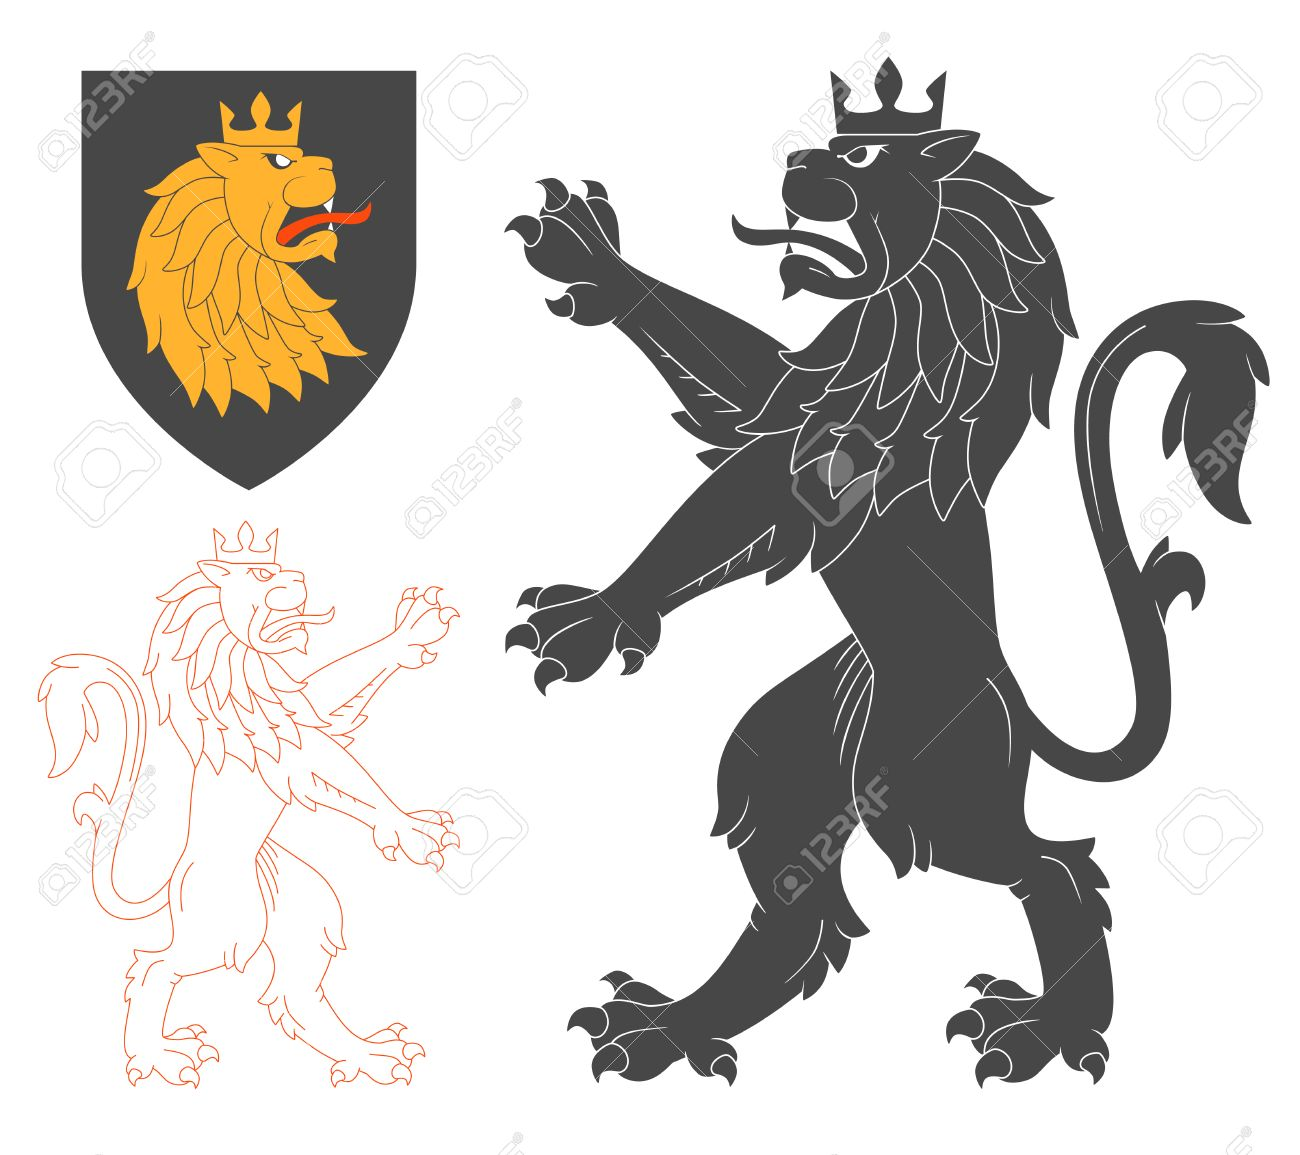 153 lion rampant cliparts stock vector and royalty free lion black lion illustration for heraldry or tattoo design isolated on white background heraldic symbols and biocorpaavc Gallery